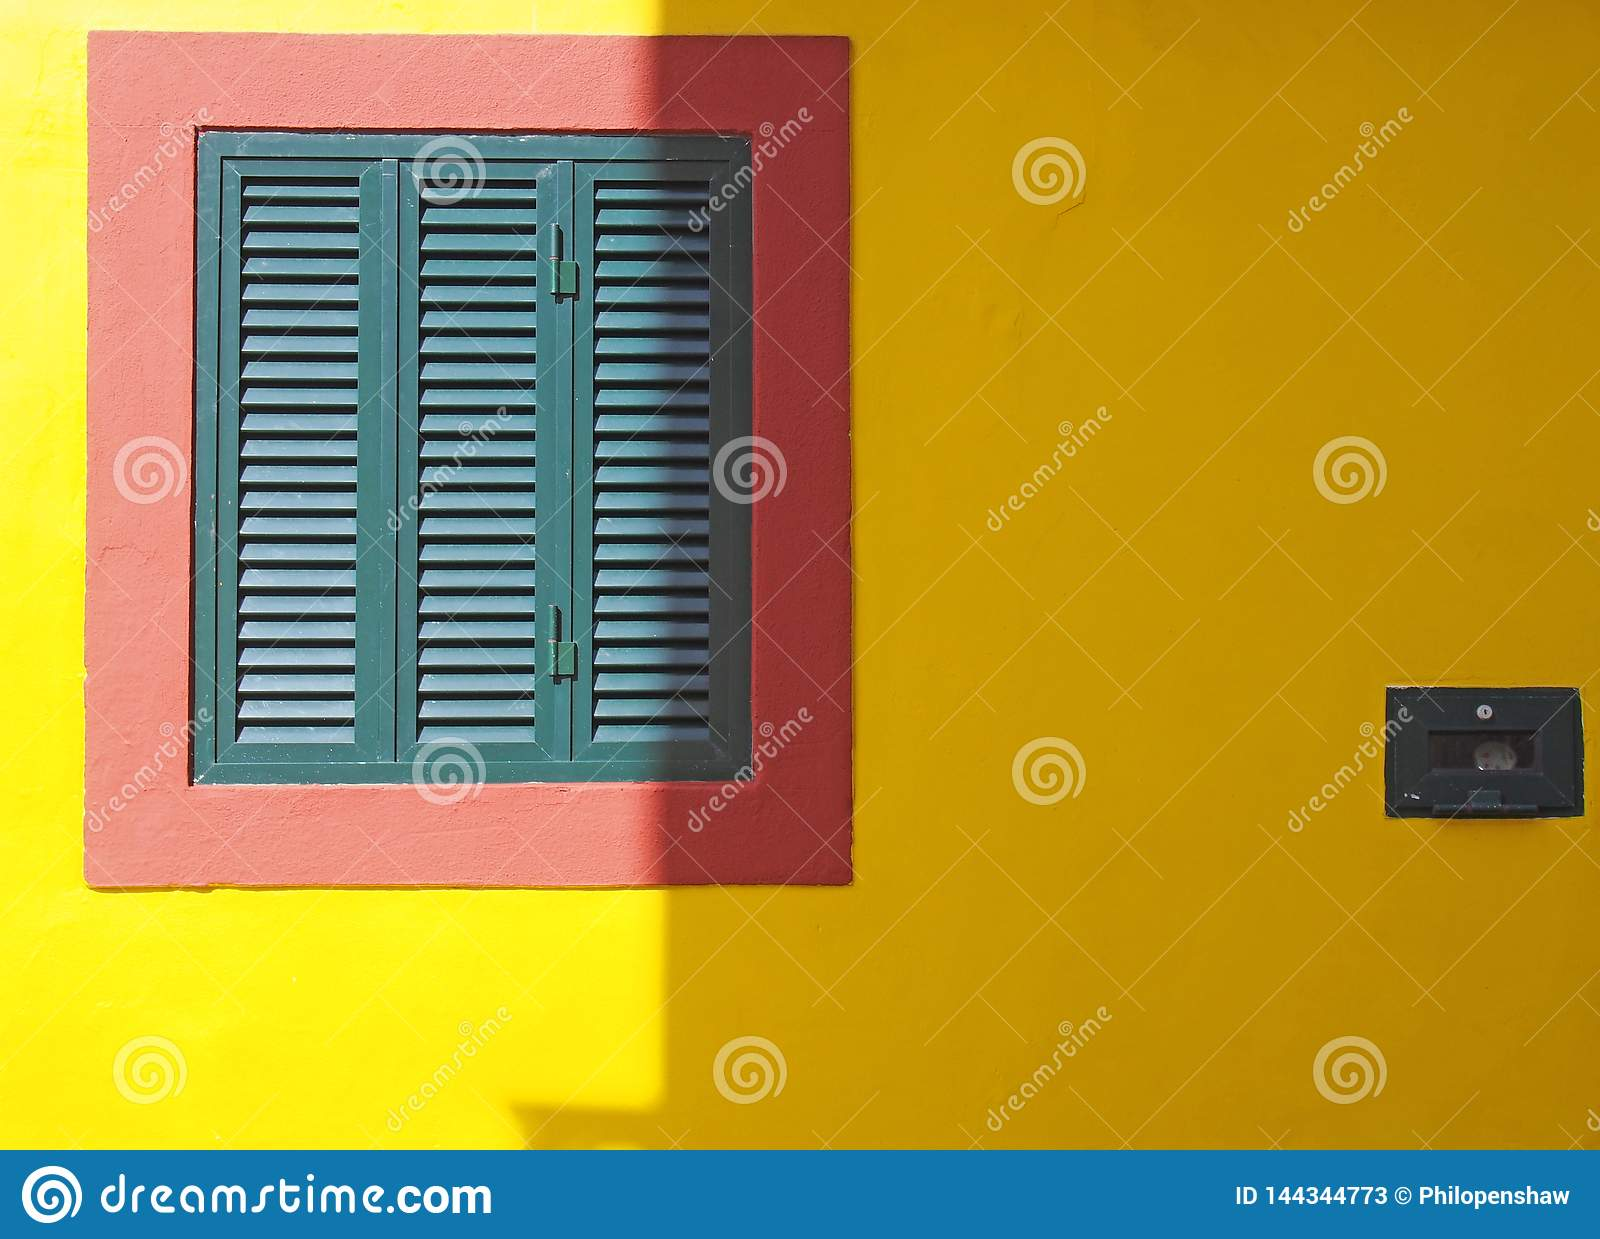 a vibrant yellow wall with red frame and green closed shuttered window typical Portuguese colors in bright sunlight and shade with